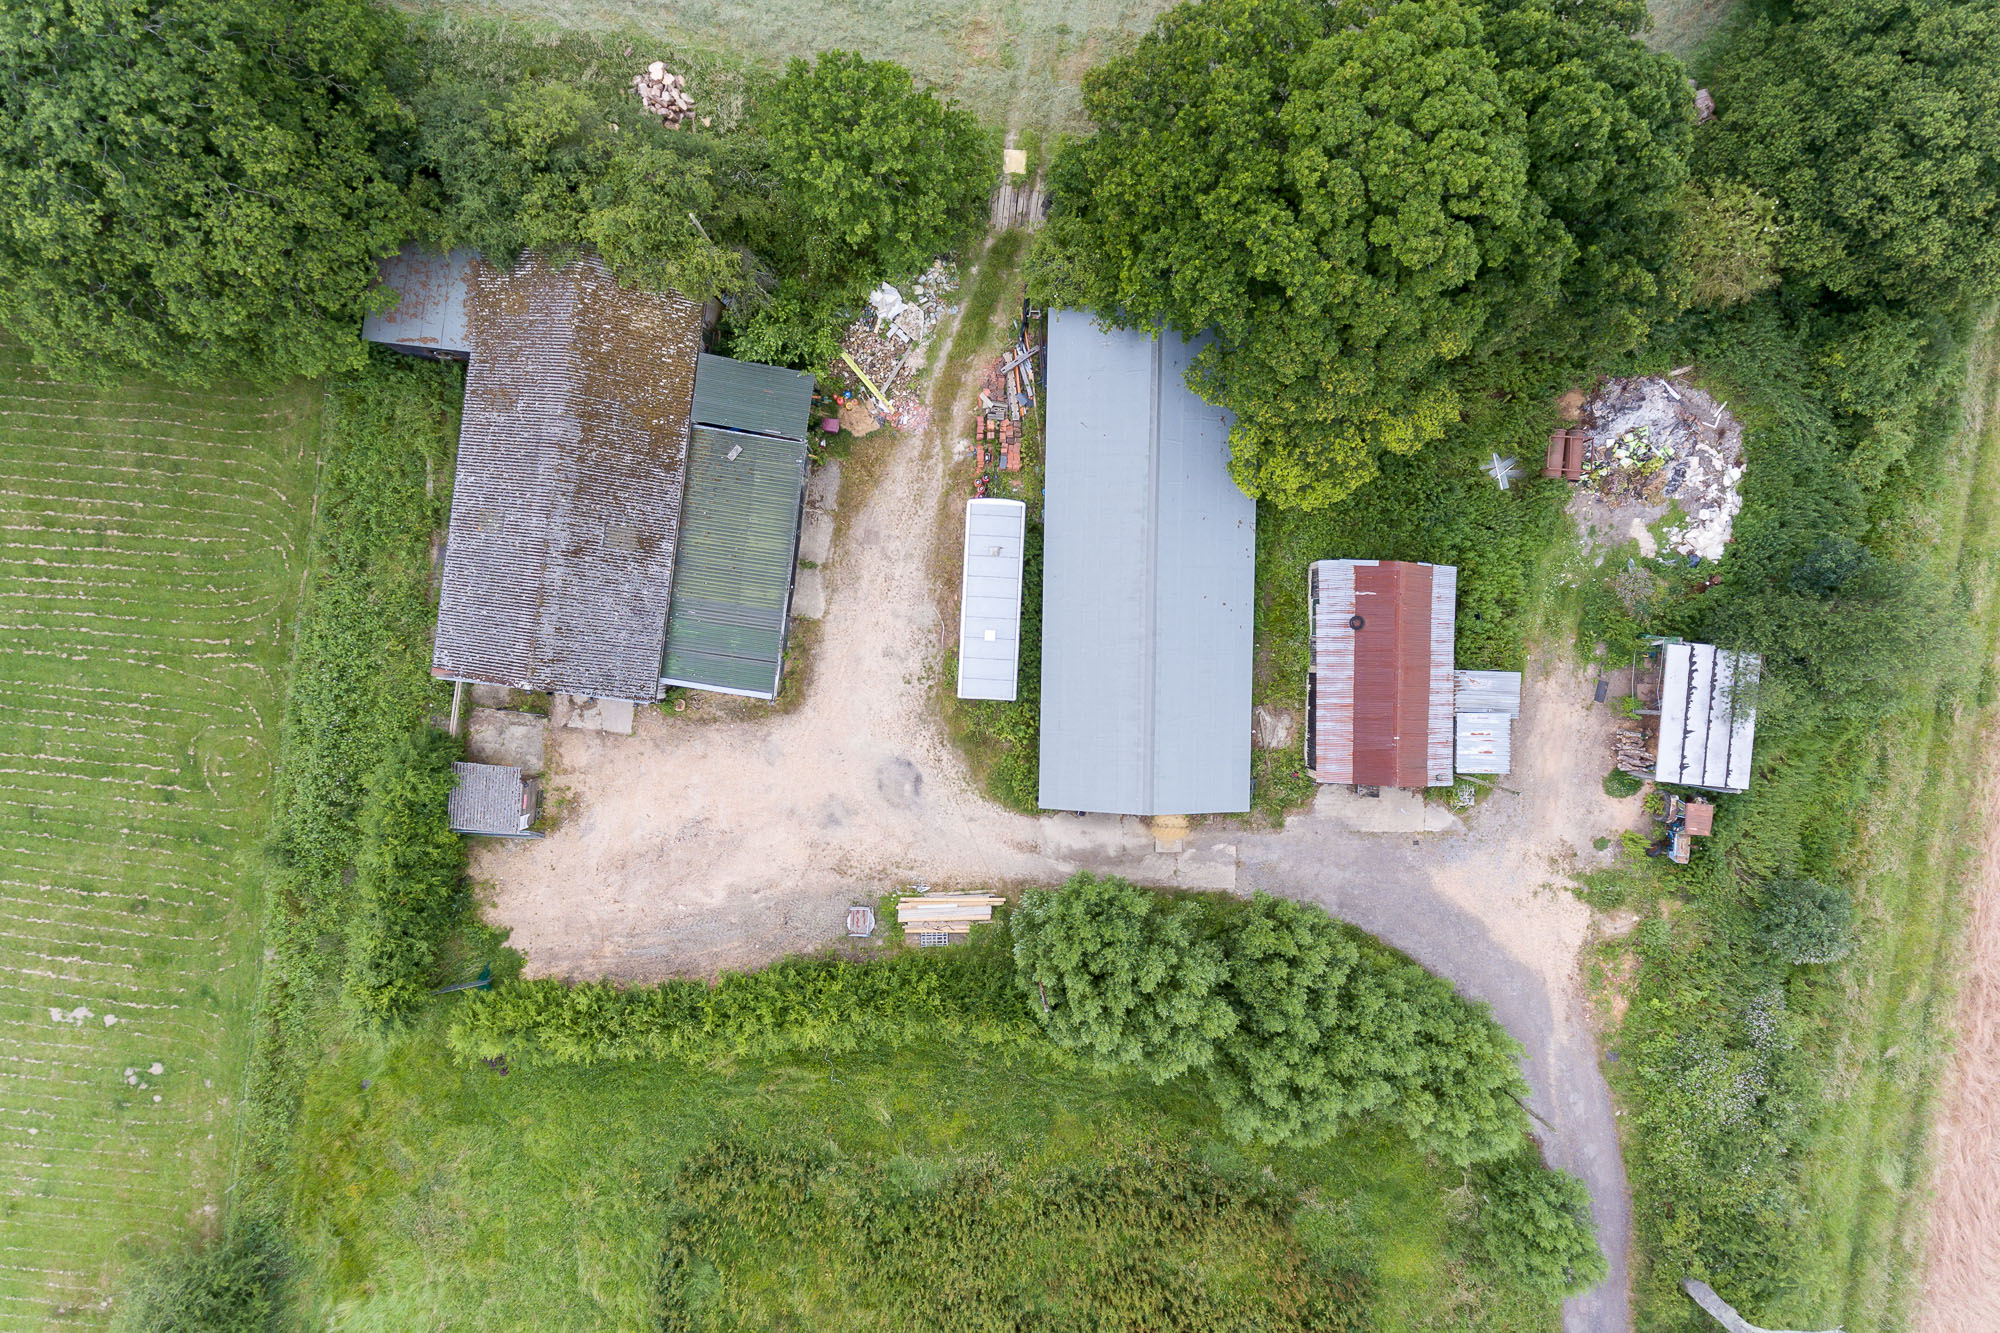 jonathan bond photography, aerial drone overhead view of rooves of a commercial farm